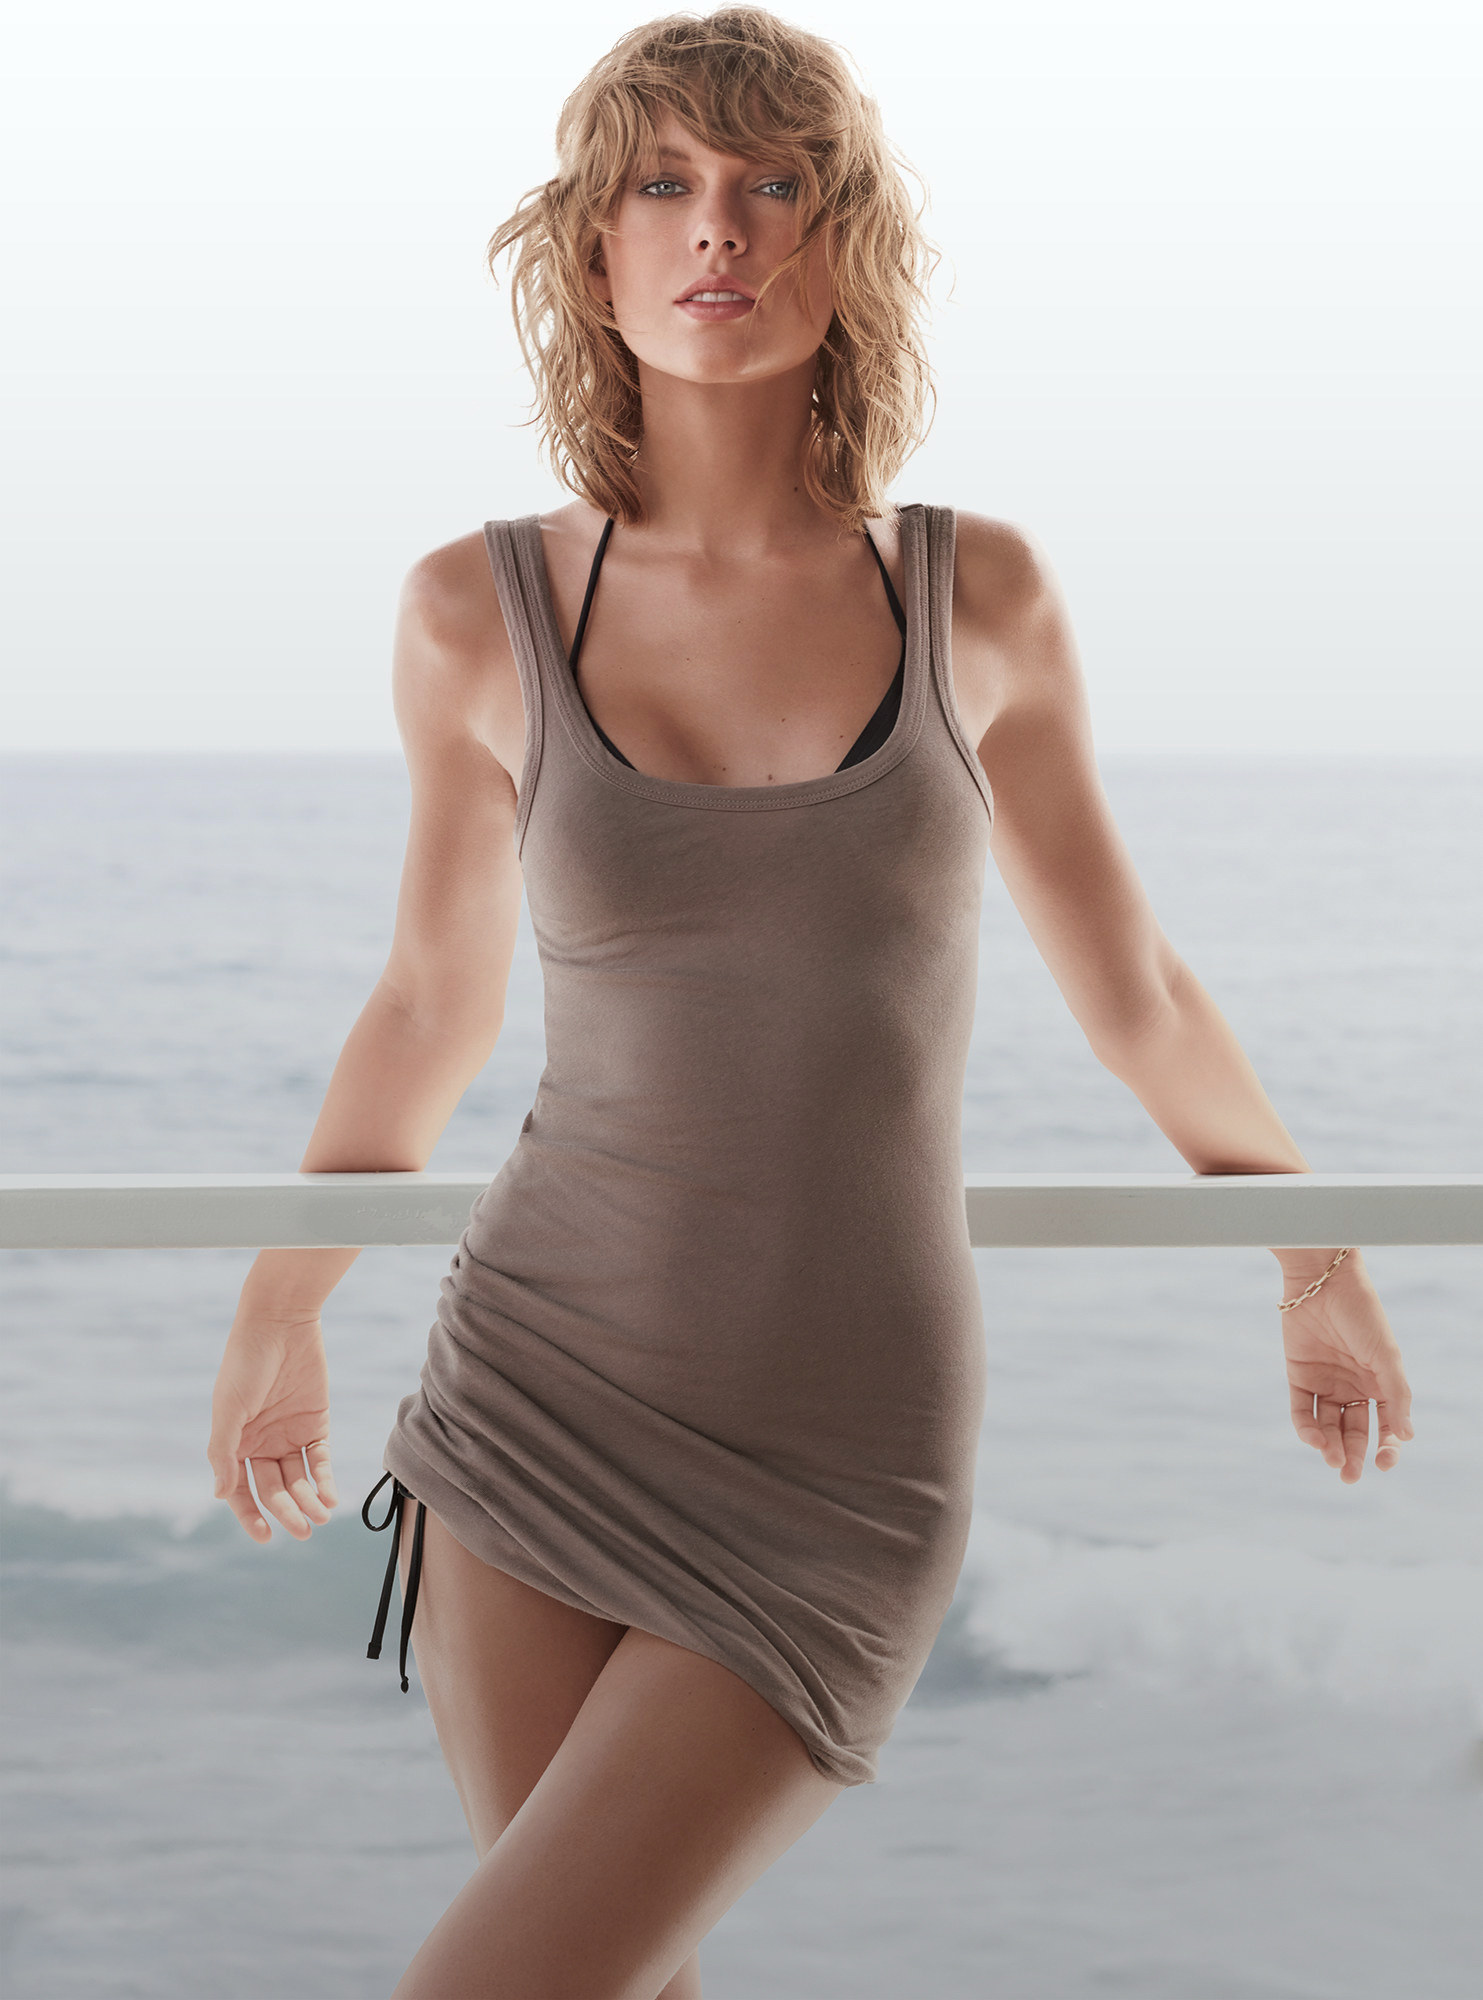 Kate upton american model and actress slideshow